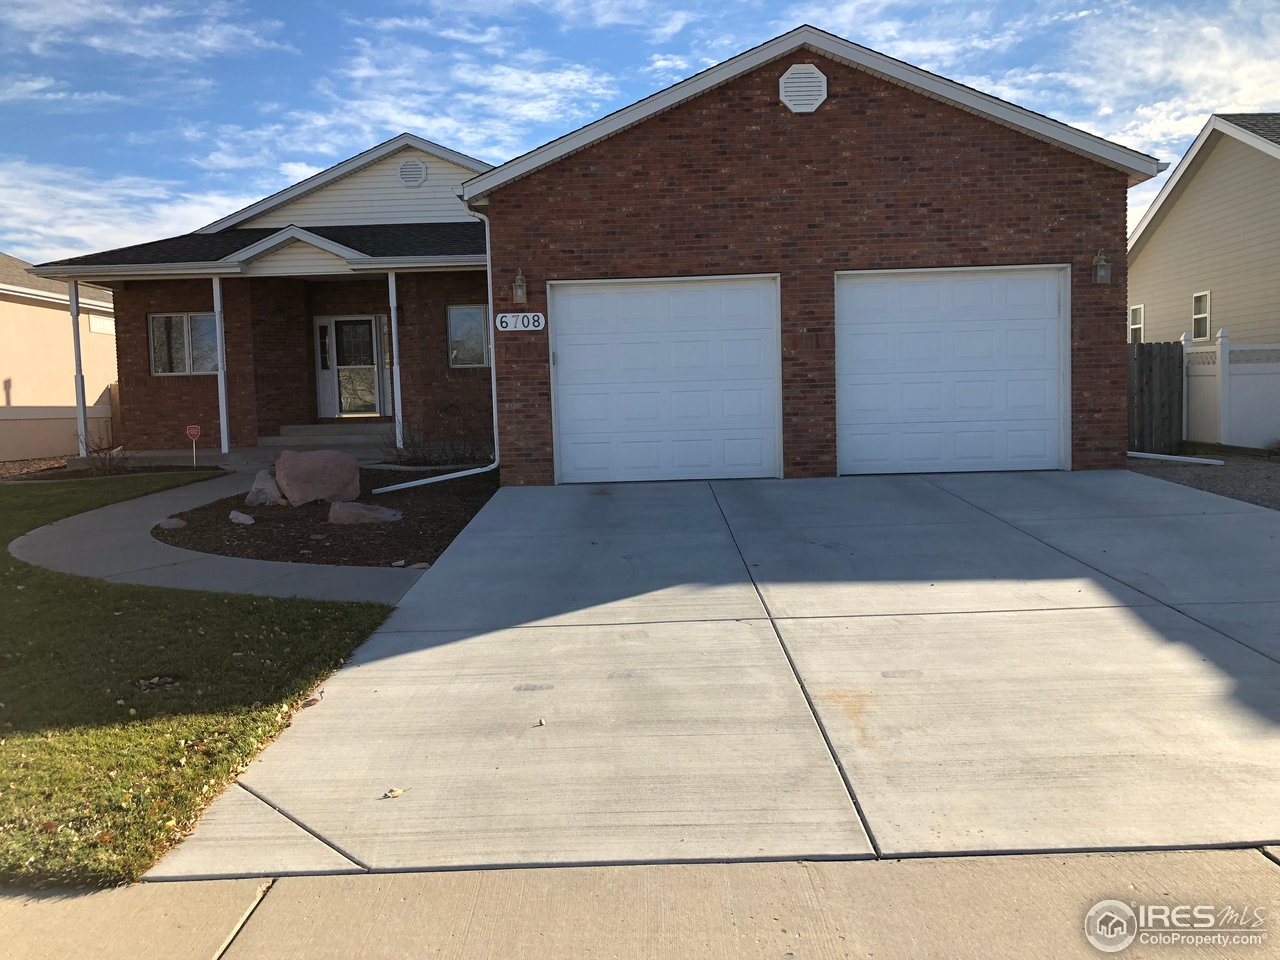 Great home in West Greeley. Low maintenance exterior with brick and vinyl siding. All new flooring, refinished dining, kitchen and laundry wood flooring. New roof (August 2018), new patio and driveway concrete. Garage is tandem. Open floor plan with gas fireplace with new luxury vinyl flooring.